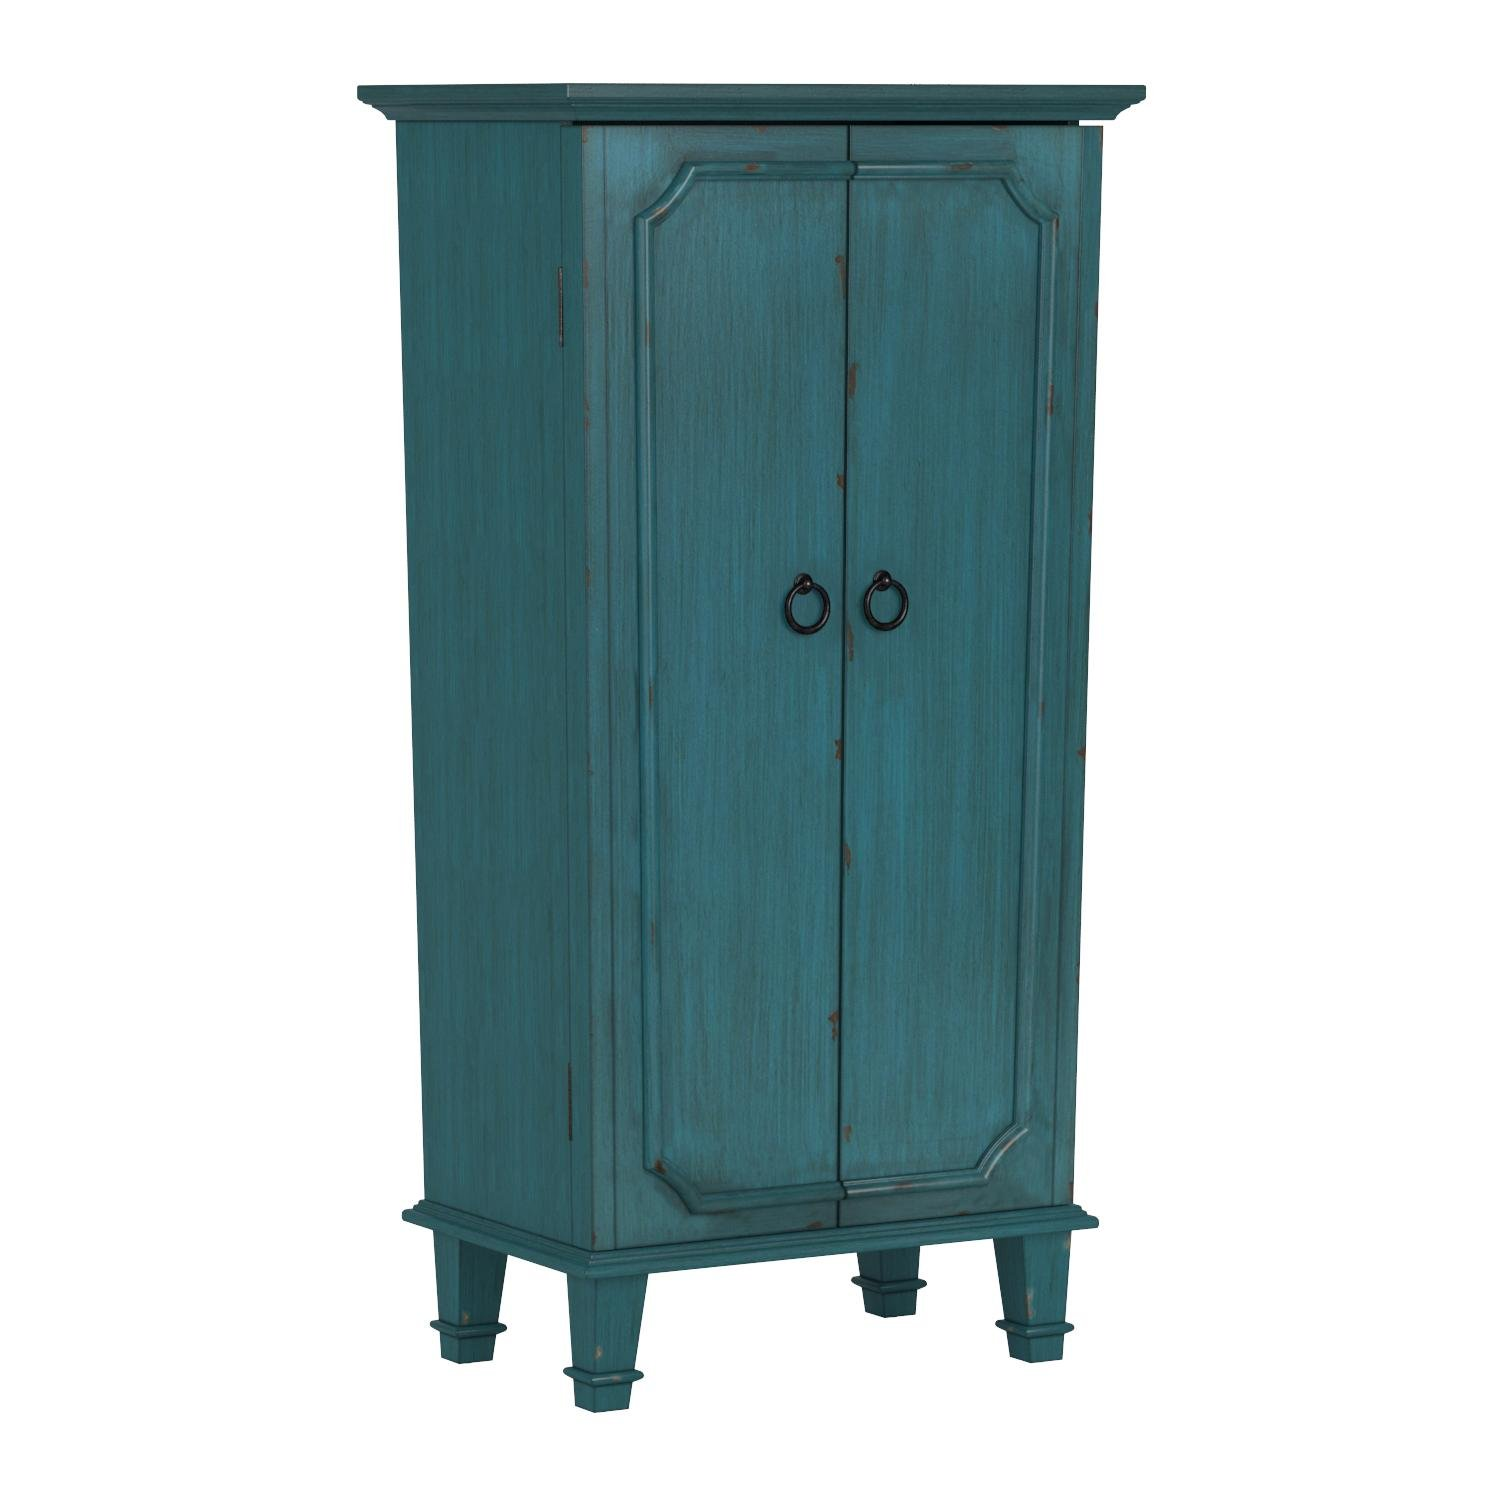 Hives and Honey Cabby Fully Locking Jewelry Armoire, 40'' x 19'' x 13.75'', Turquoise by Hives and Honey